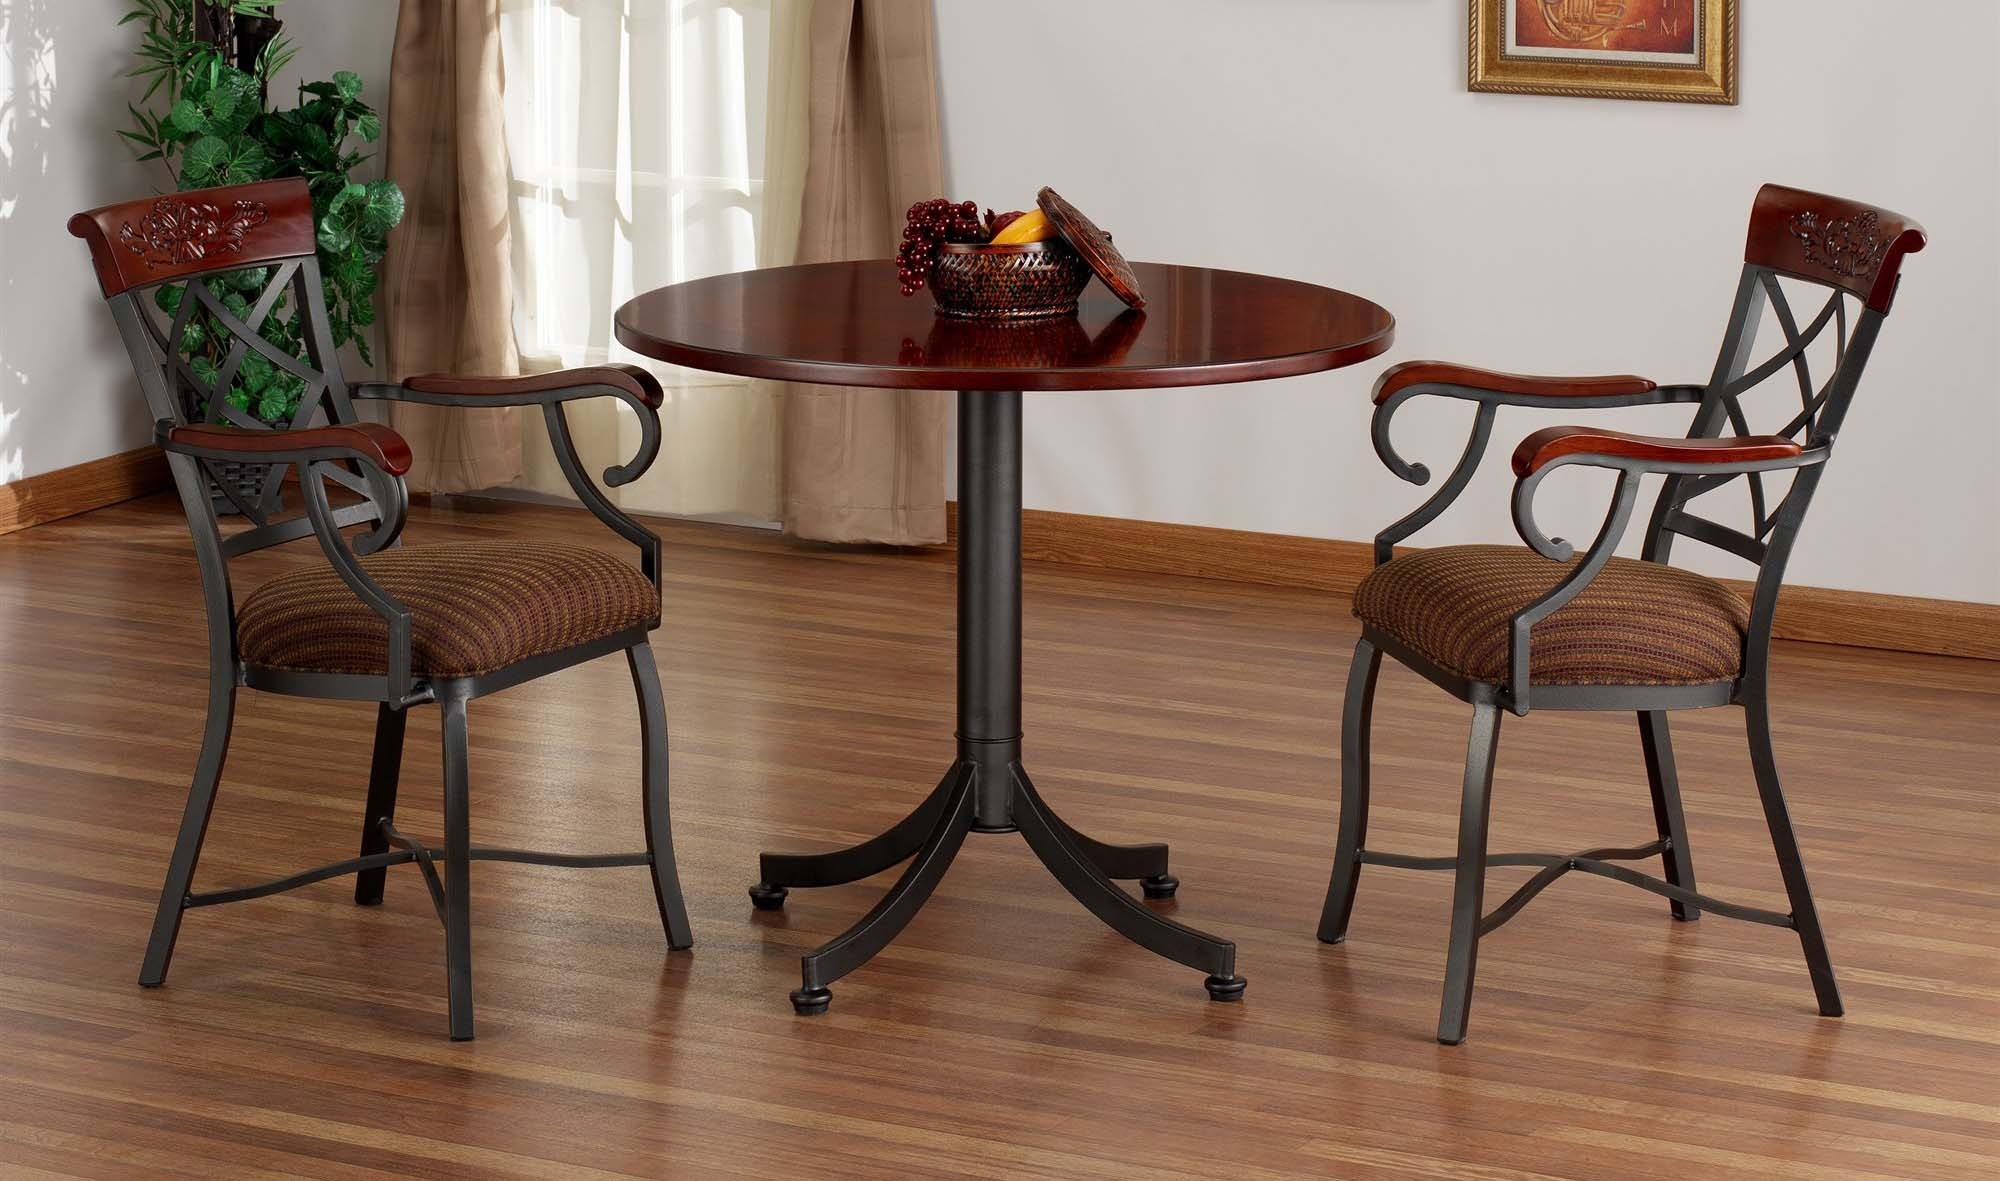 Magnificent bistro table and chairs for home furniture ideas with indoor bistro table and chairs